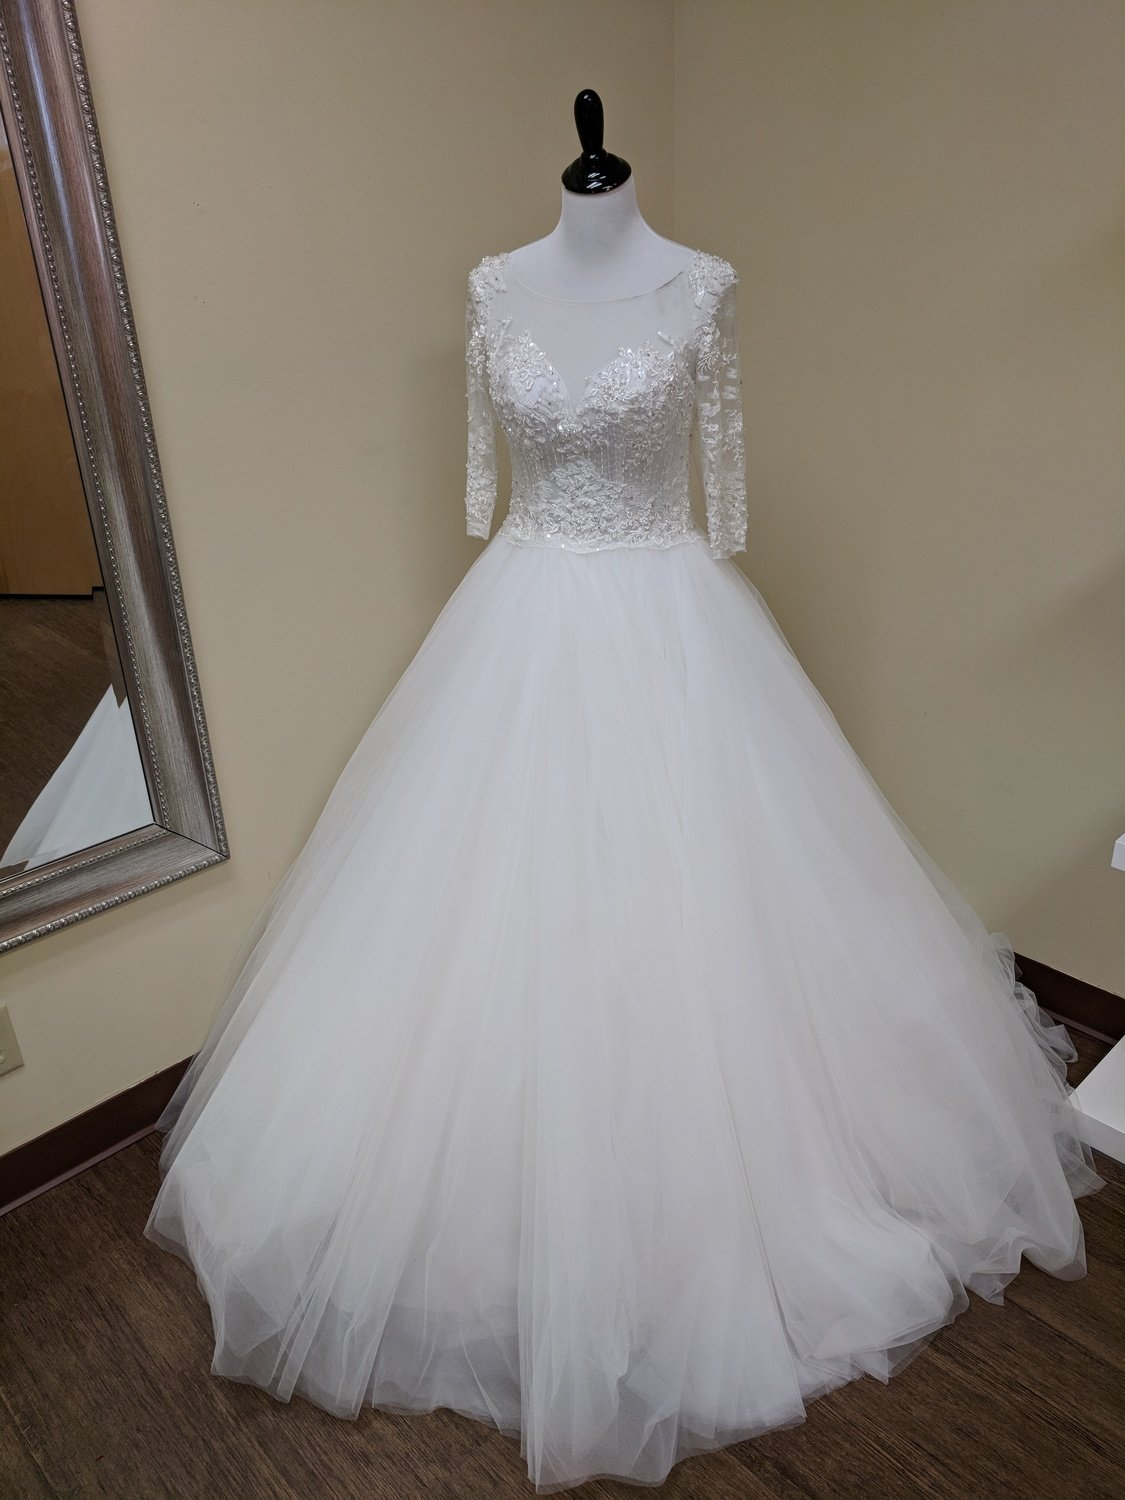 Gorgeous Vintage Inspired Wedding Dress size 200 20   OFF THE RACK ONLY